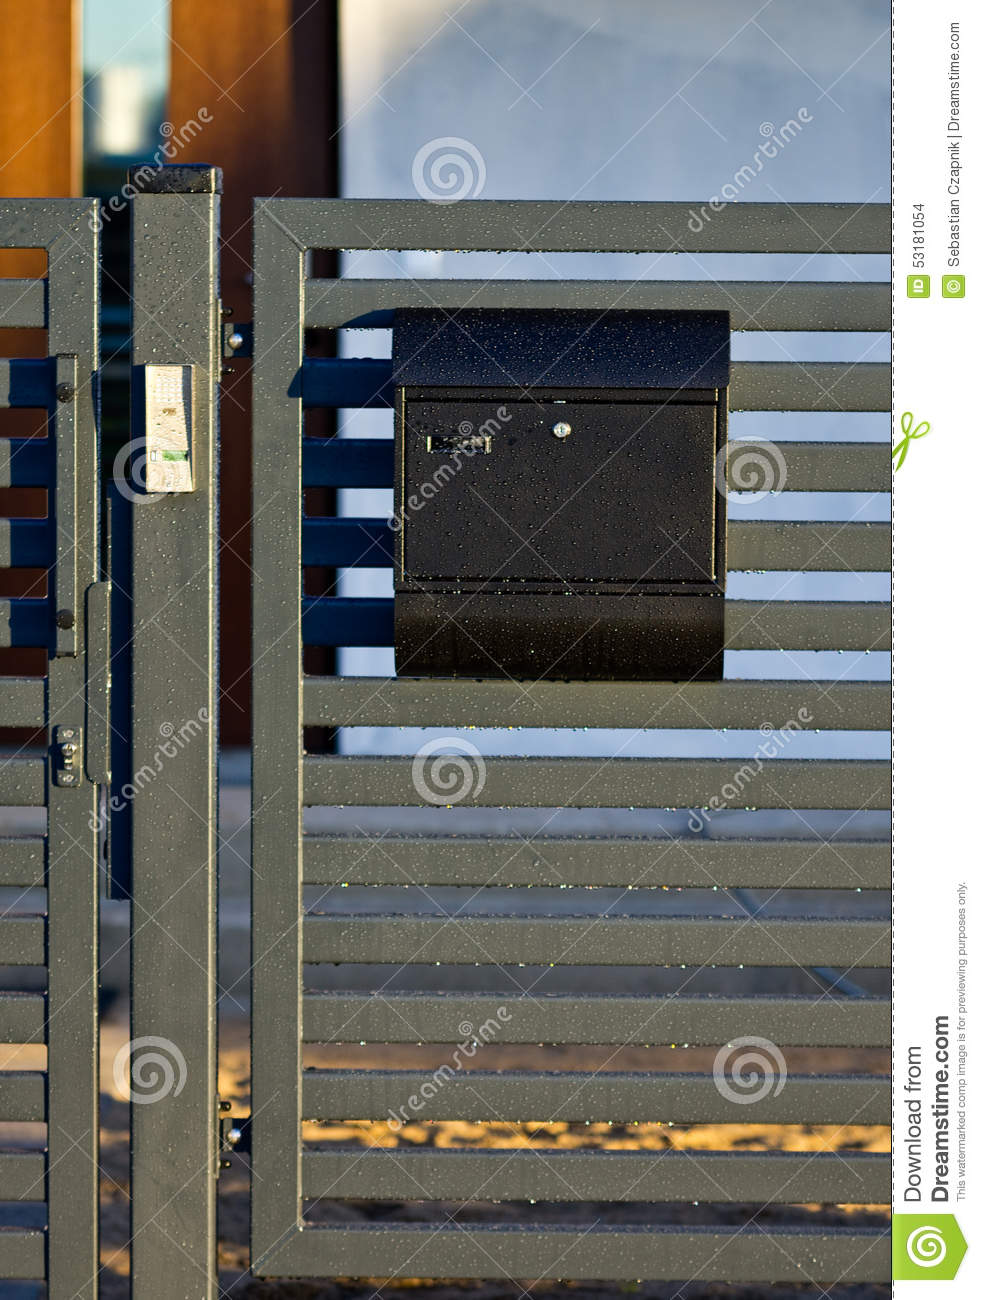 Mailbox On A House Fence Stock Photo - Image: 53181054